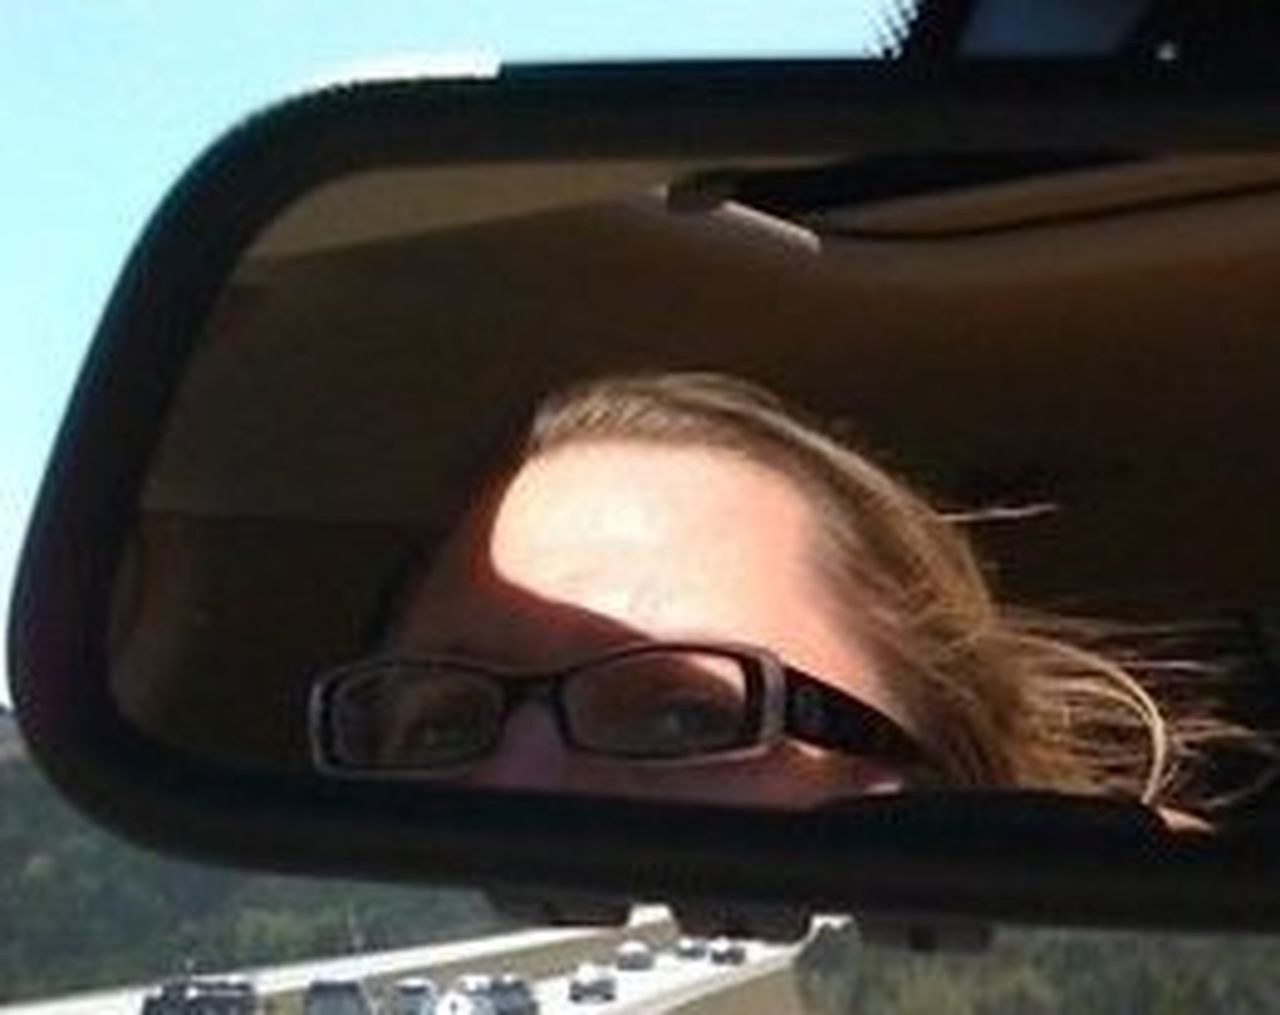 sunglasses, reflection, one person, car, portrait, headshot, people, driving, human body part, one woman only, adult, young adult, only women, adults only, day, looking at camera, sunlight, vehicle mirror, close-up, human eye, eyesight, beautiful woman, one young woman only, young women, outdoors, sky